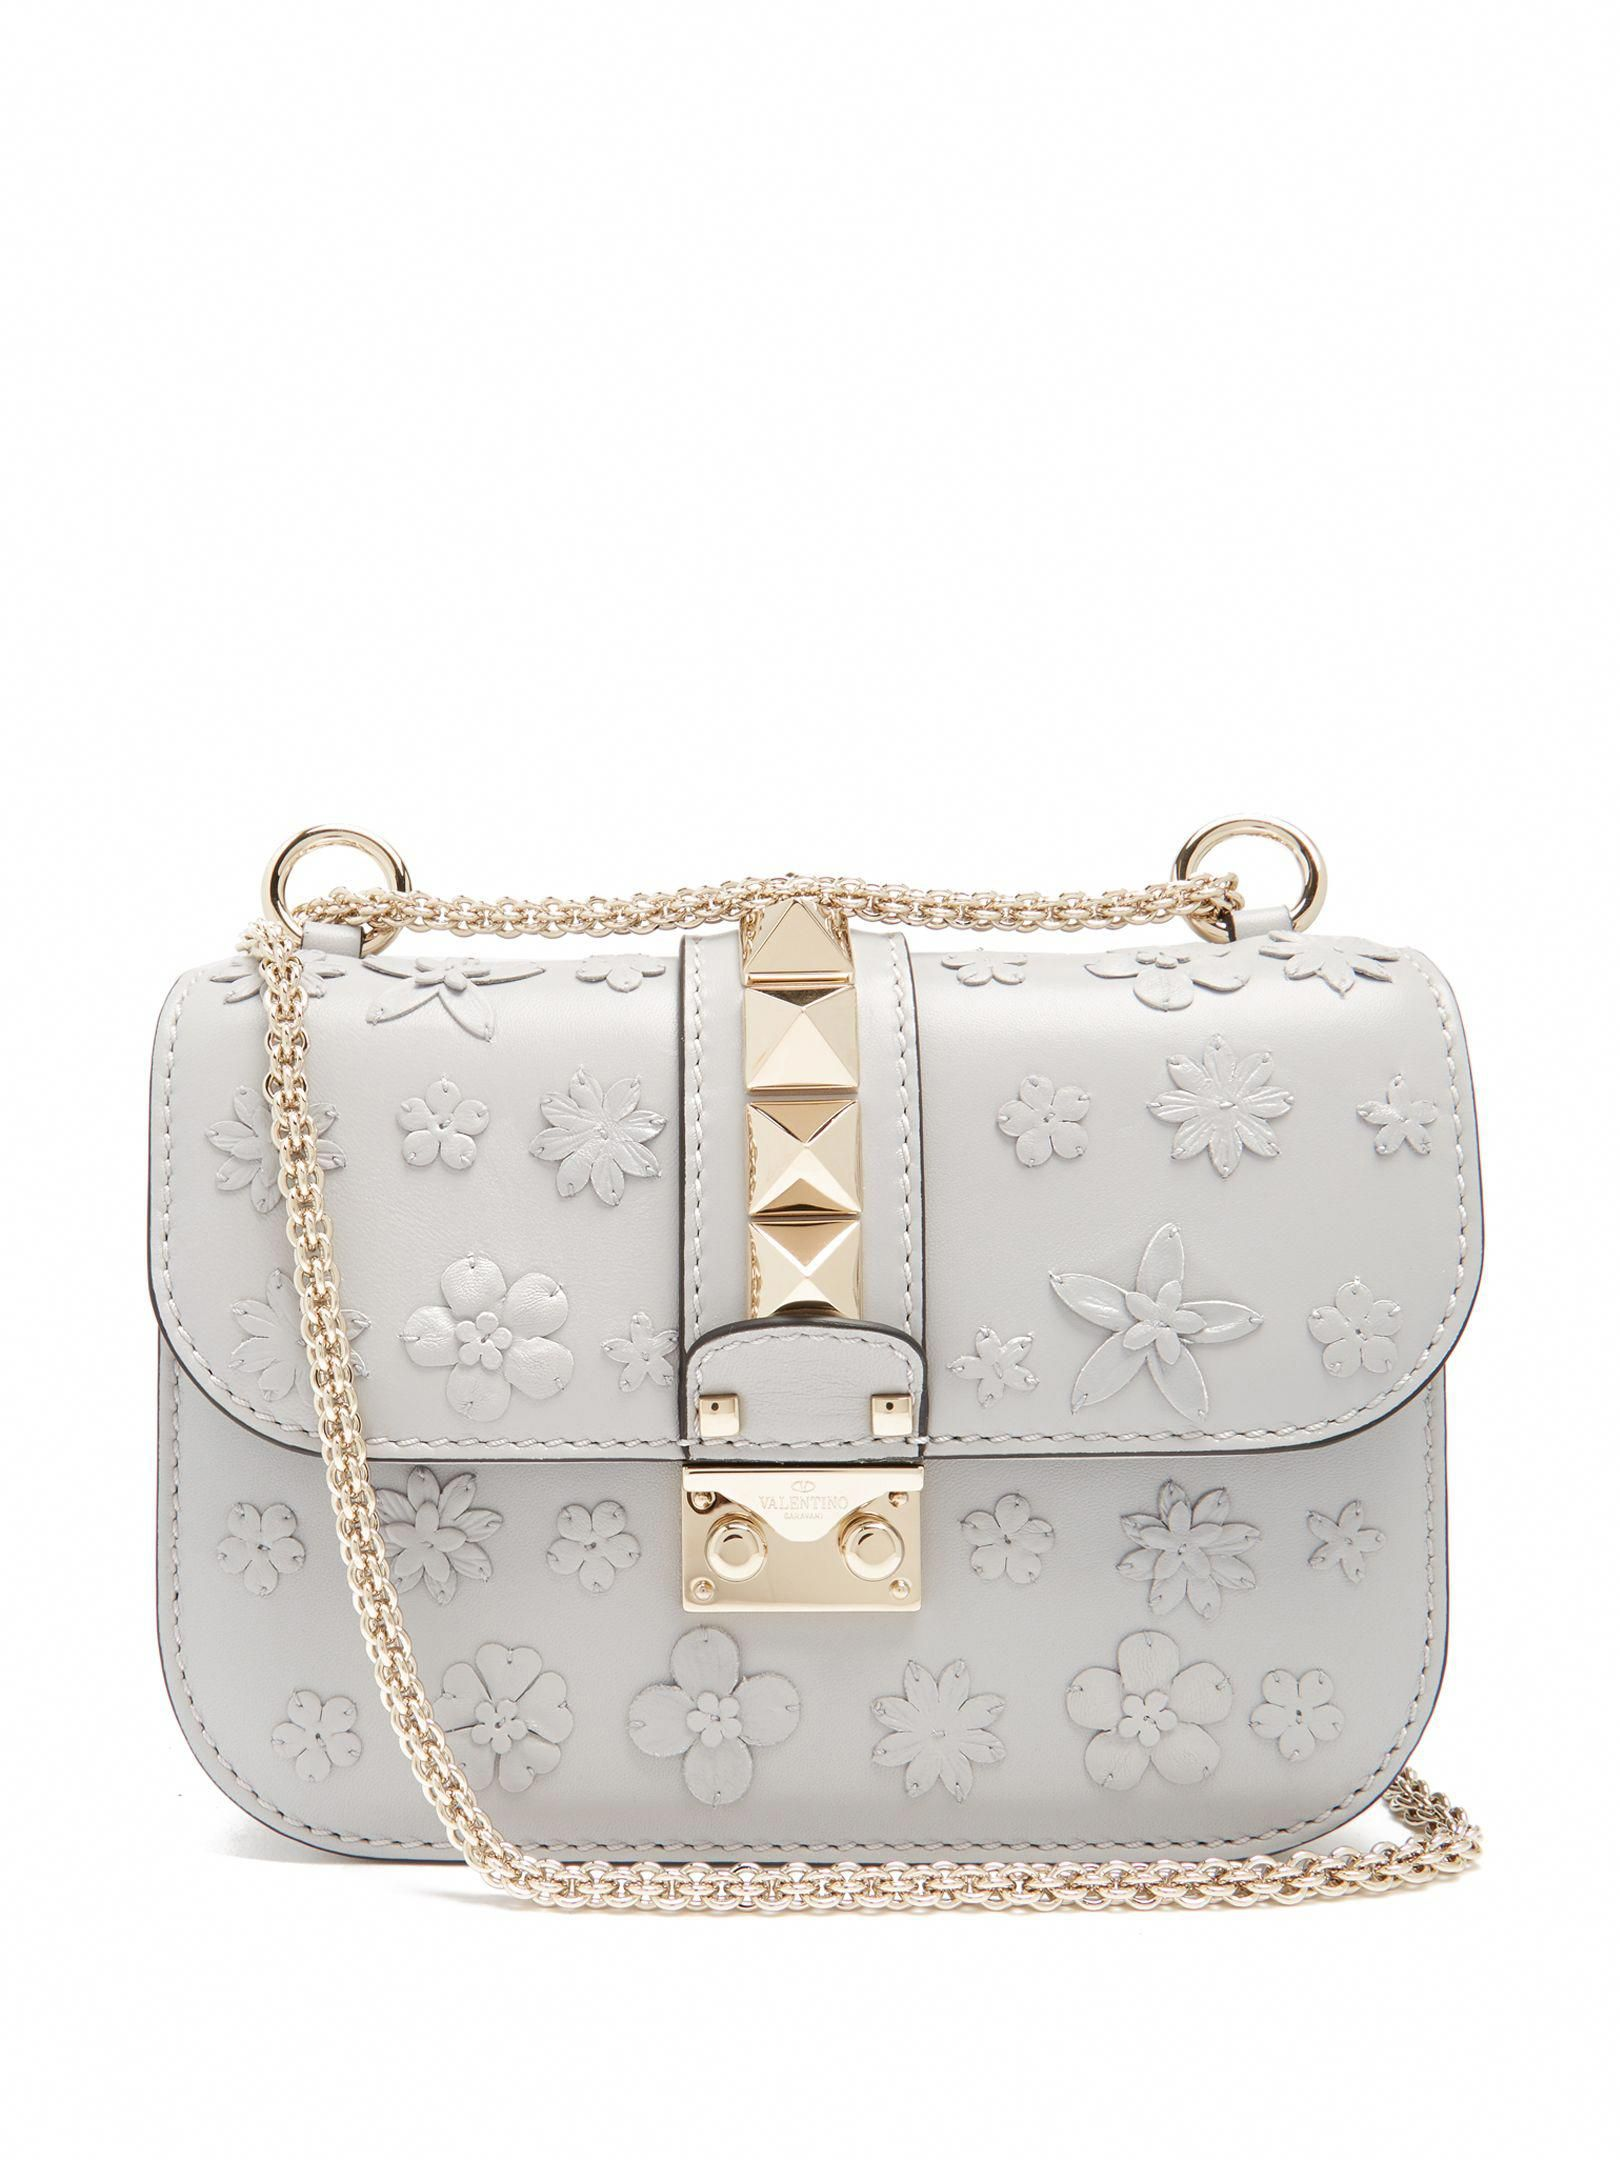 21ada73f04d0 Lock small flower-embellished leather shoulder bag | Valentino |  MATCHESFASHION.COM US #Valentino